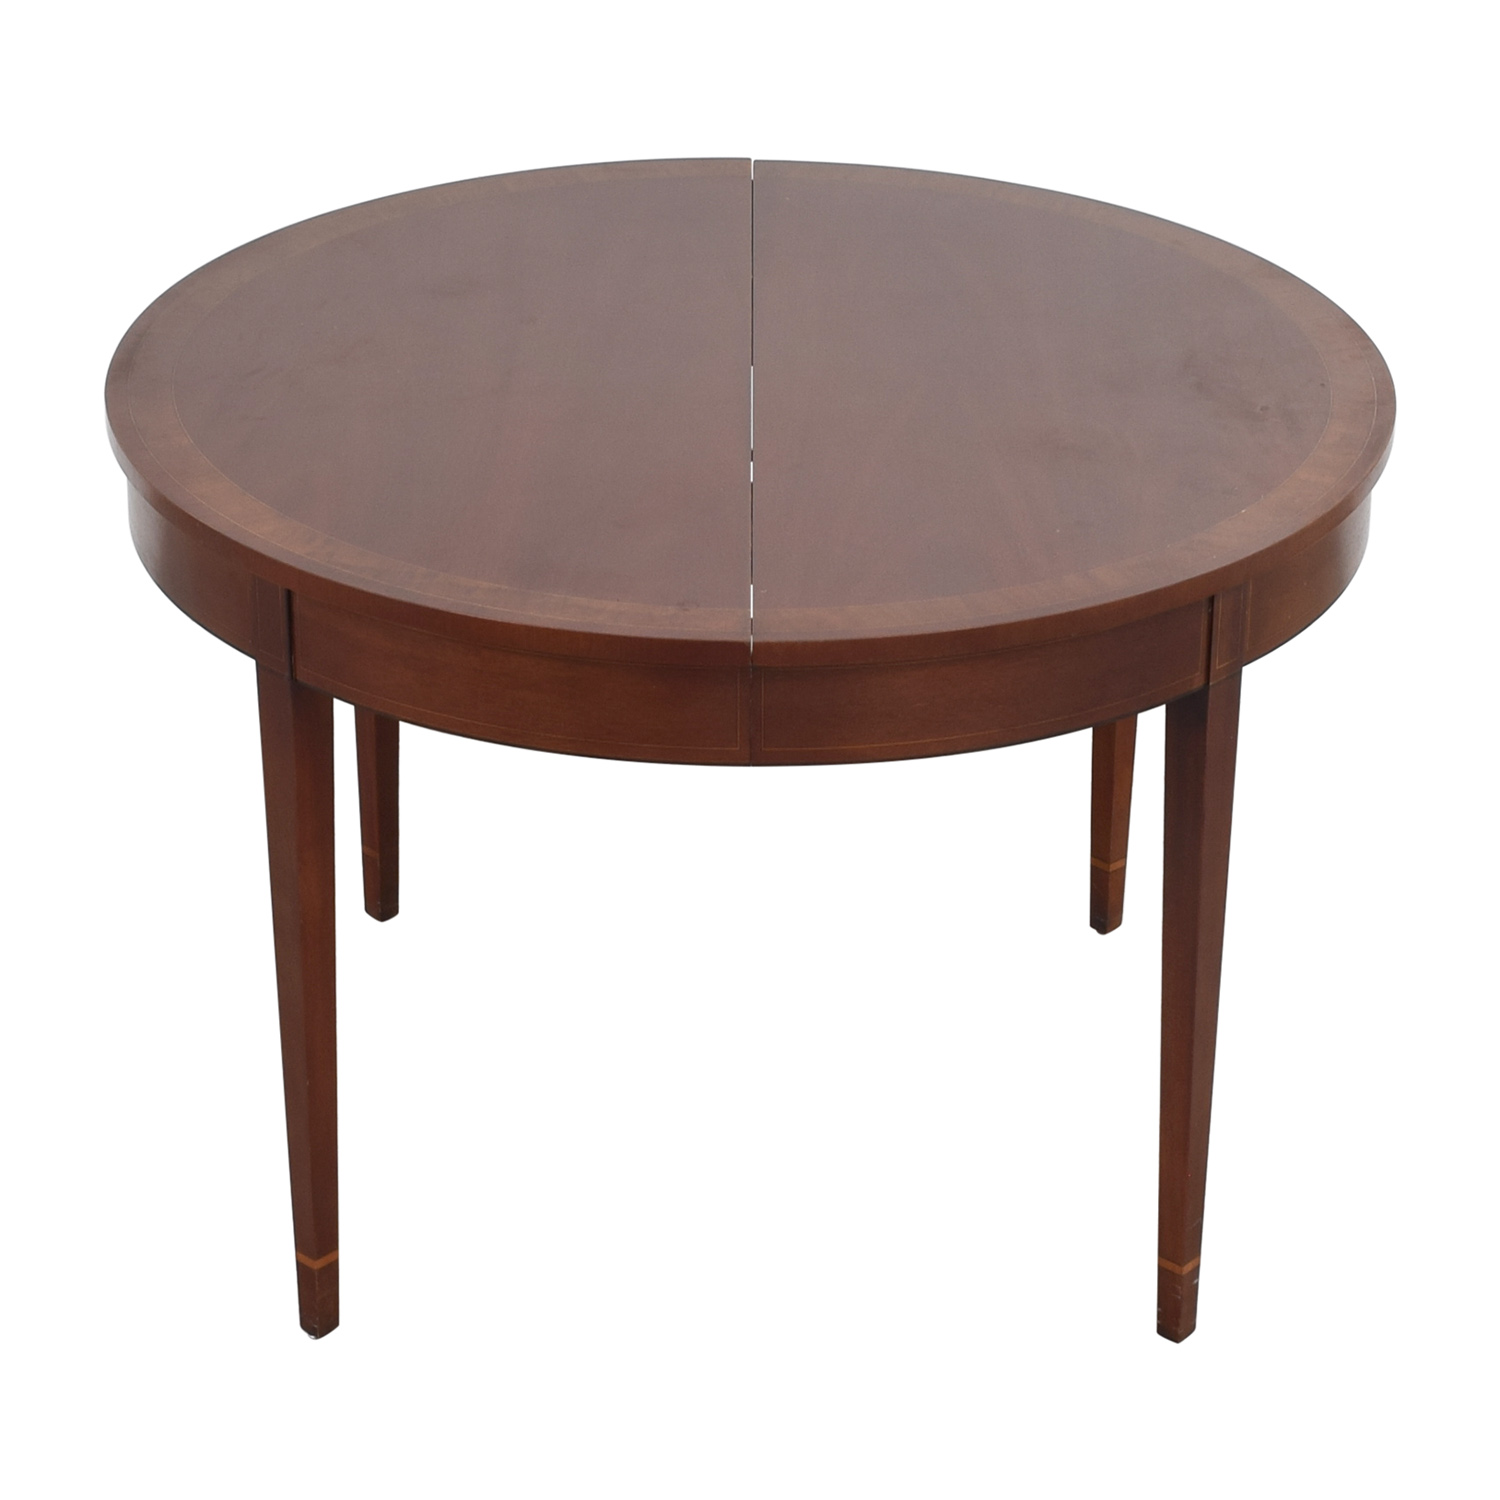 Stickley Stickley HIC 8301-40 Round Wood Table Tables